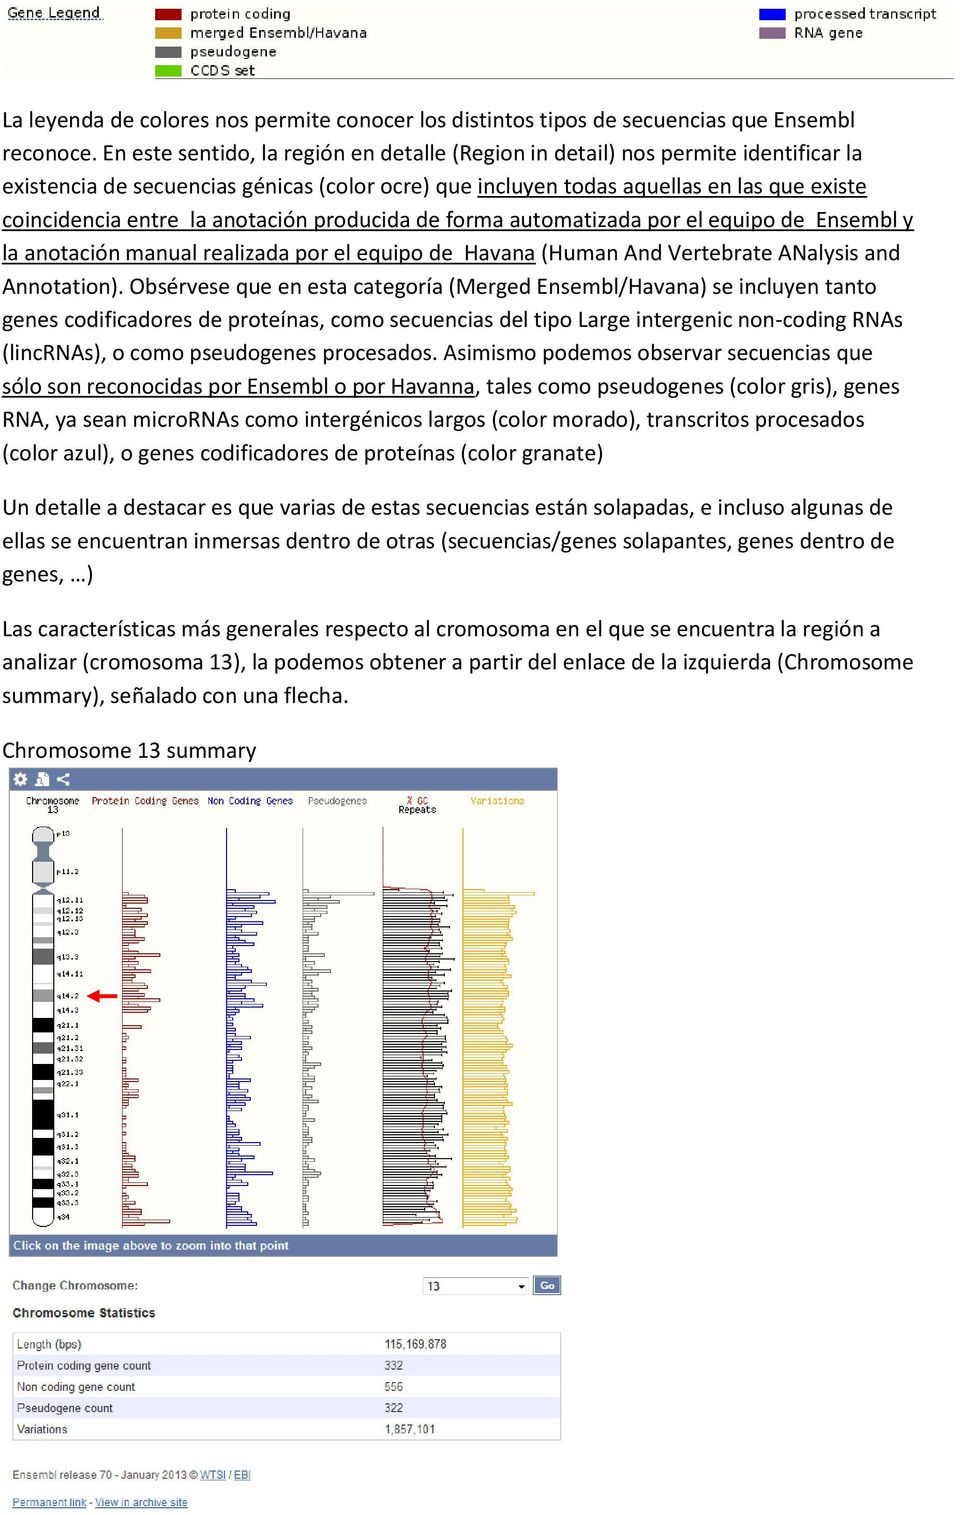 anotación producida de forma automatizada por el equipo de Ensembl y la anotación manual realizada por el equipo de Havana (Human And Vertebrate ANalysis and Annotation).